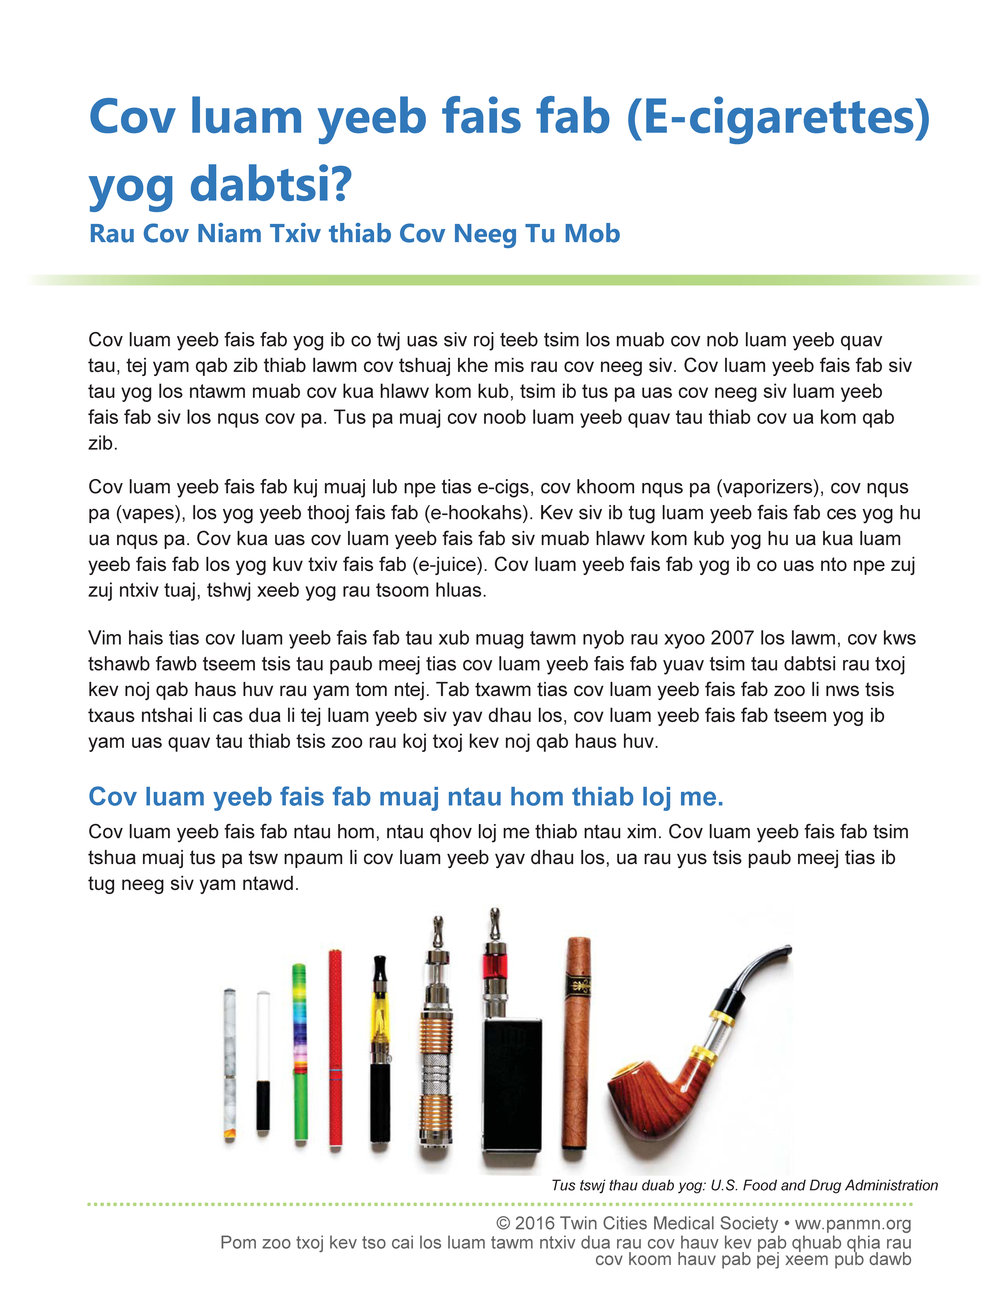 What are E-Cigarettes - Hmong